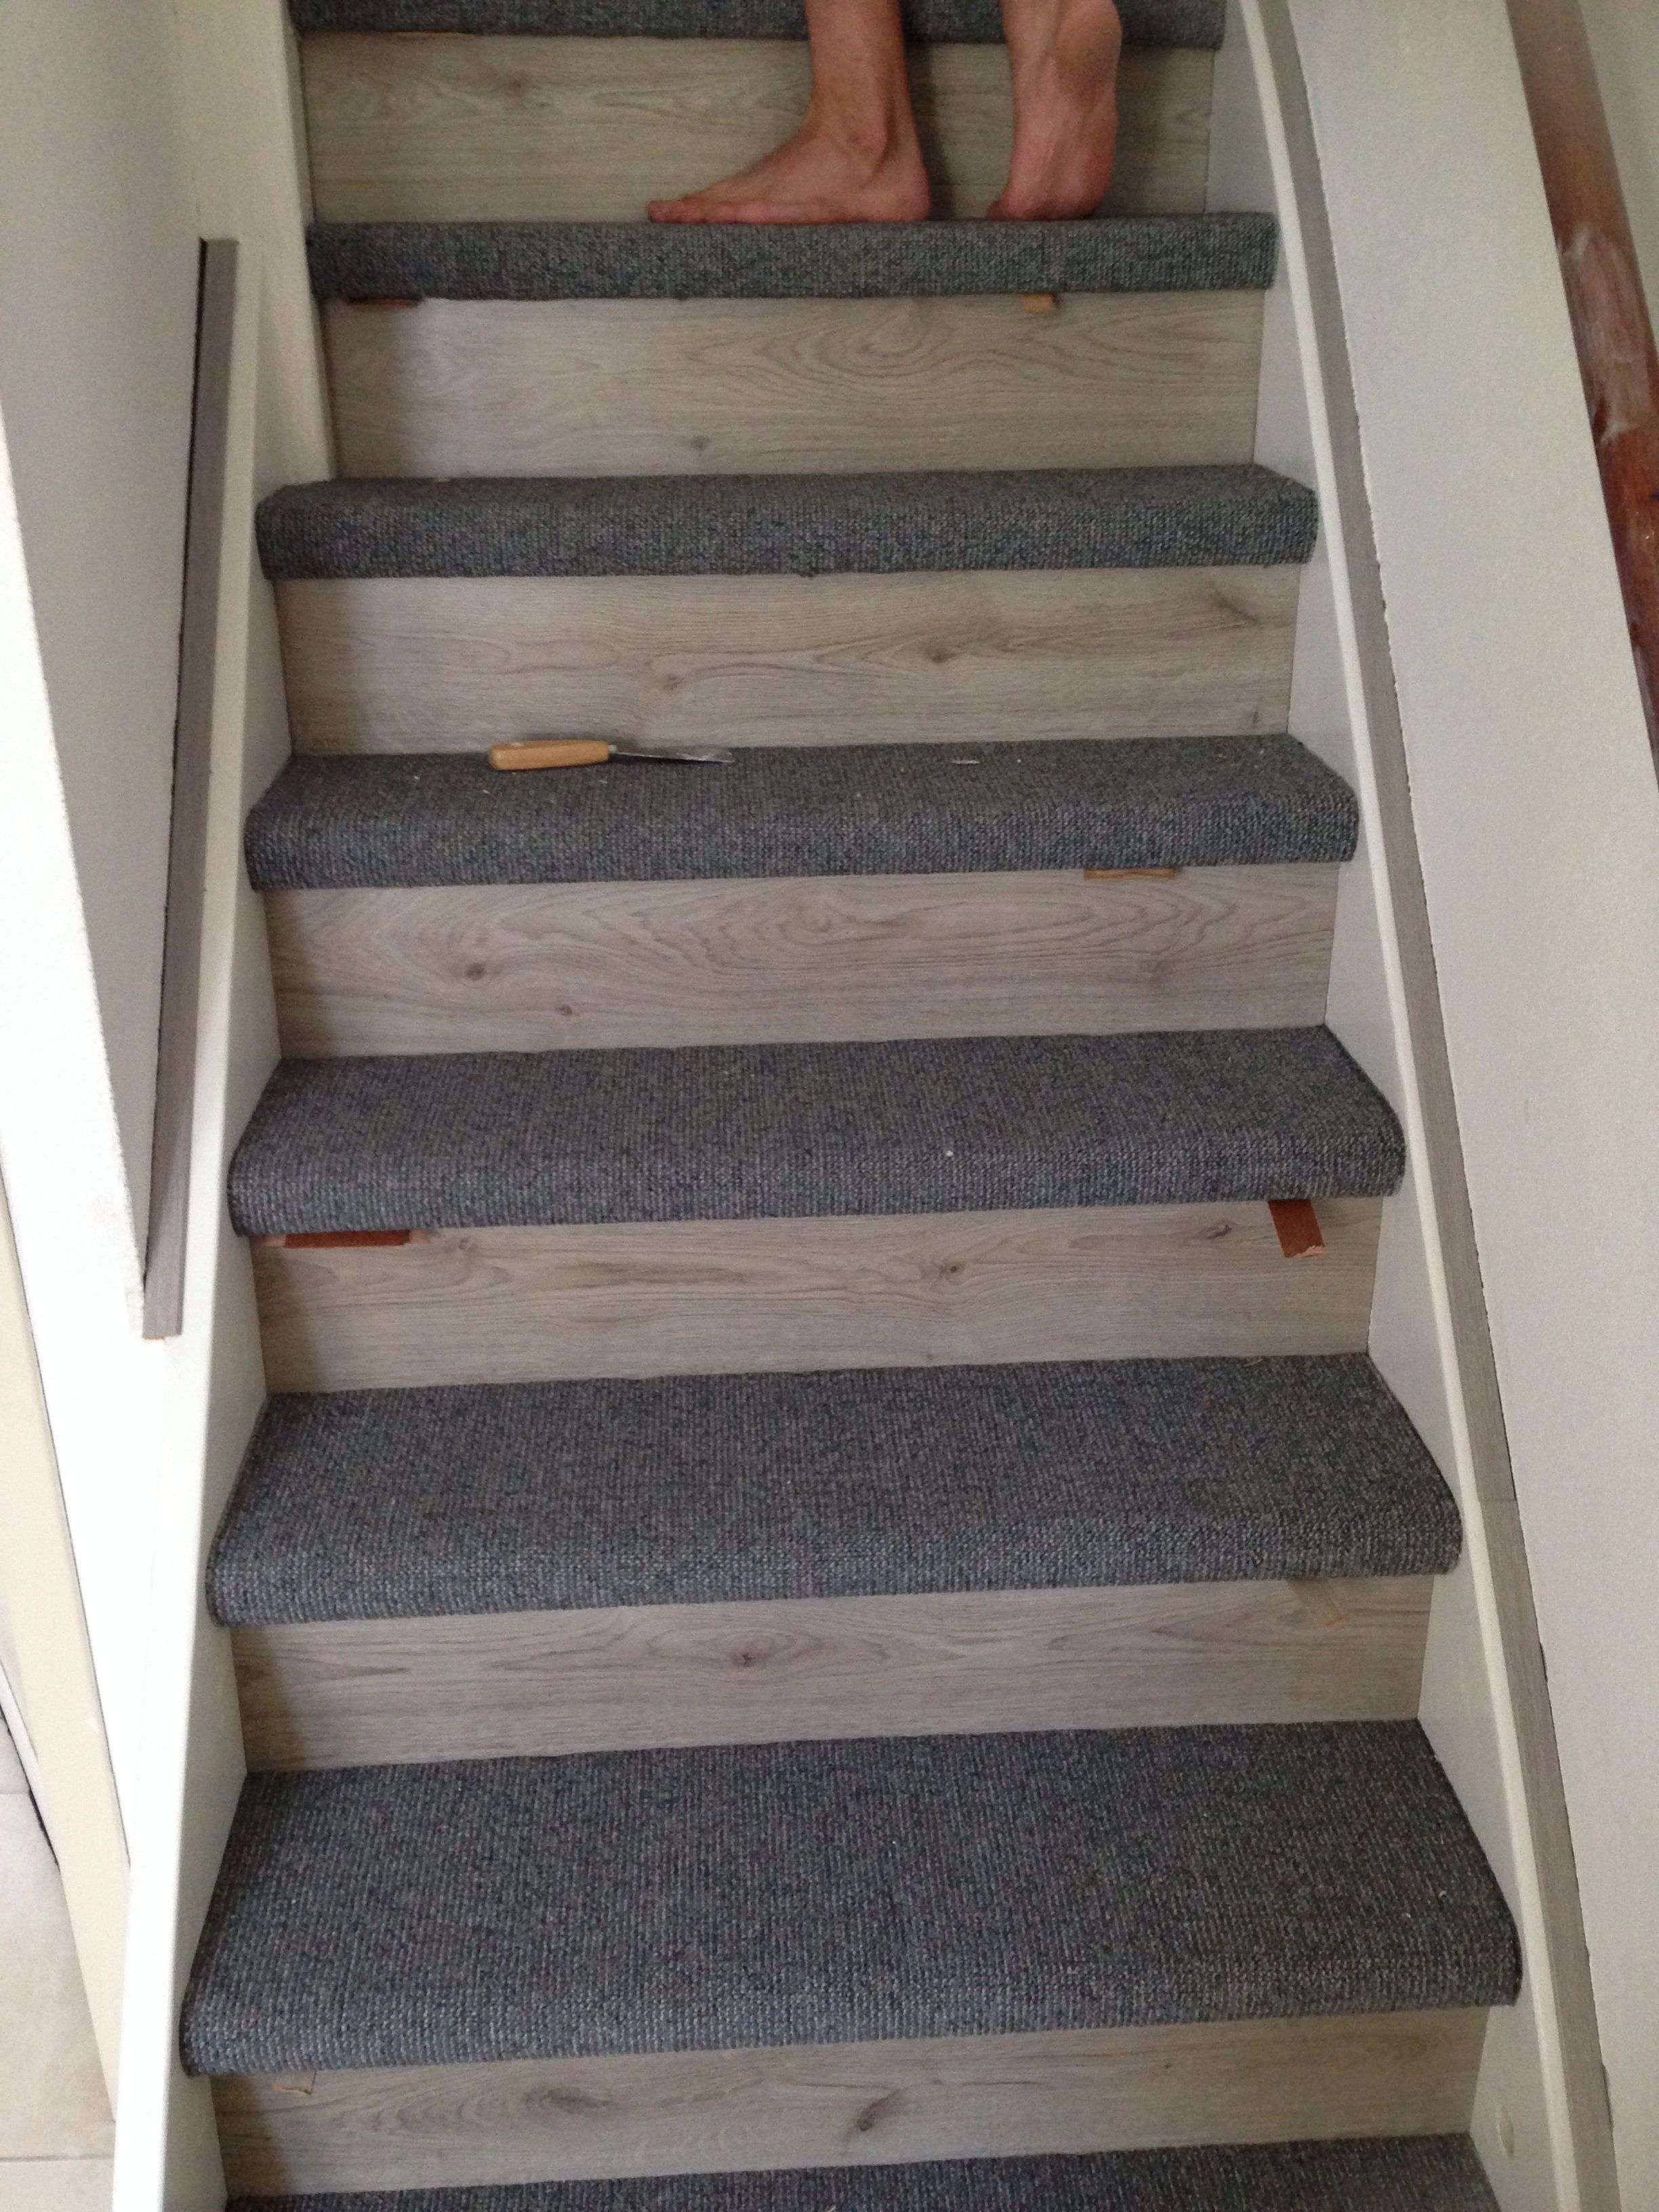 Hickory Flooring Risers With Carpet Treads To Transition From Downstairs Wood Flooring To Upstairs C Laminate Flooring On Stairs Carpet Staircase Carpet Stairs